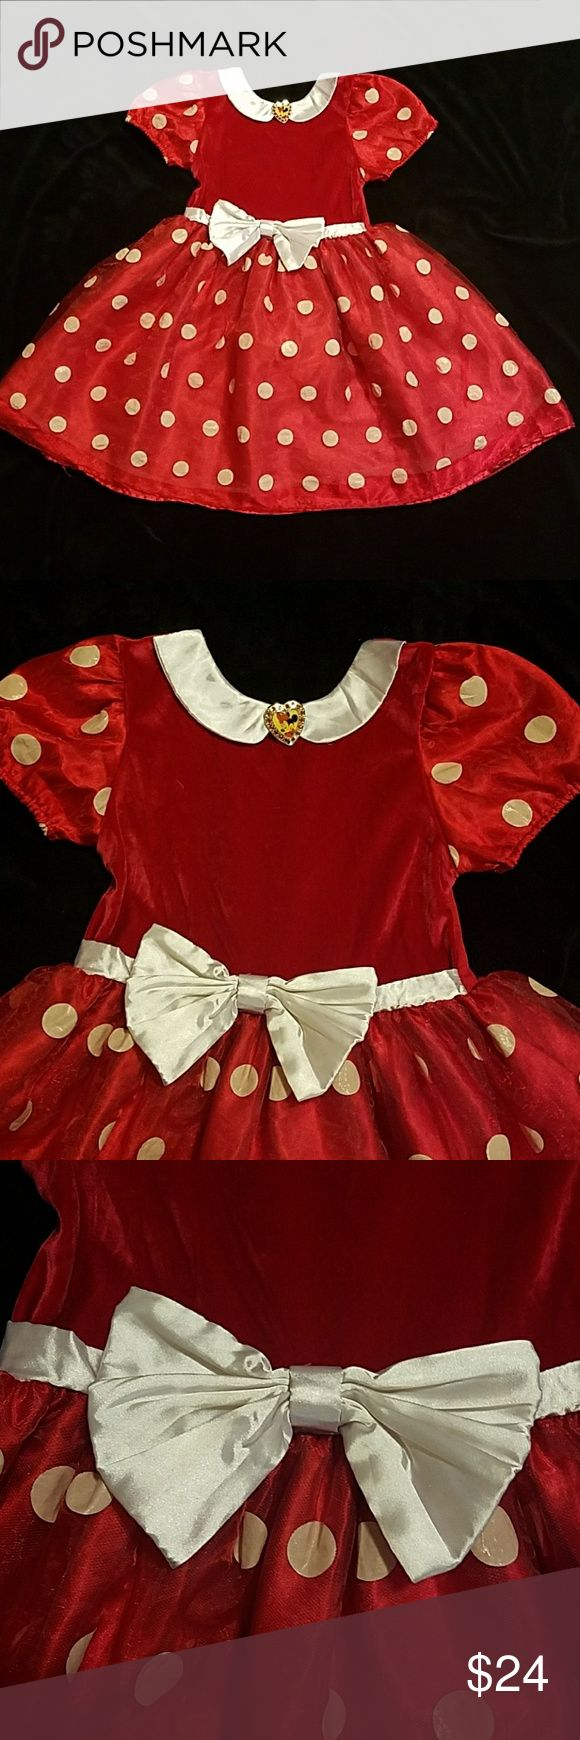 Minnie Mouse dress size 7/8 Red velvet bodice with satin sleeves and a satin underskirt with a tulle polka dot overlay.  Perfect for that Disney vacation this year!   There is a slight hole on the underlayer  of the skirt as shown in the last picture but it cannot be seen while worn. Disney Costumes